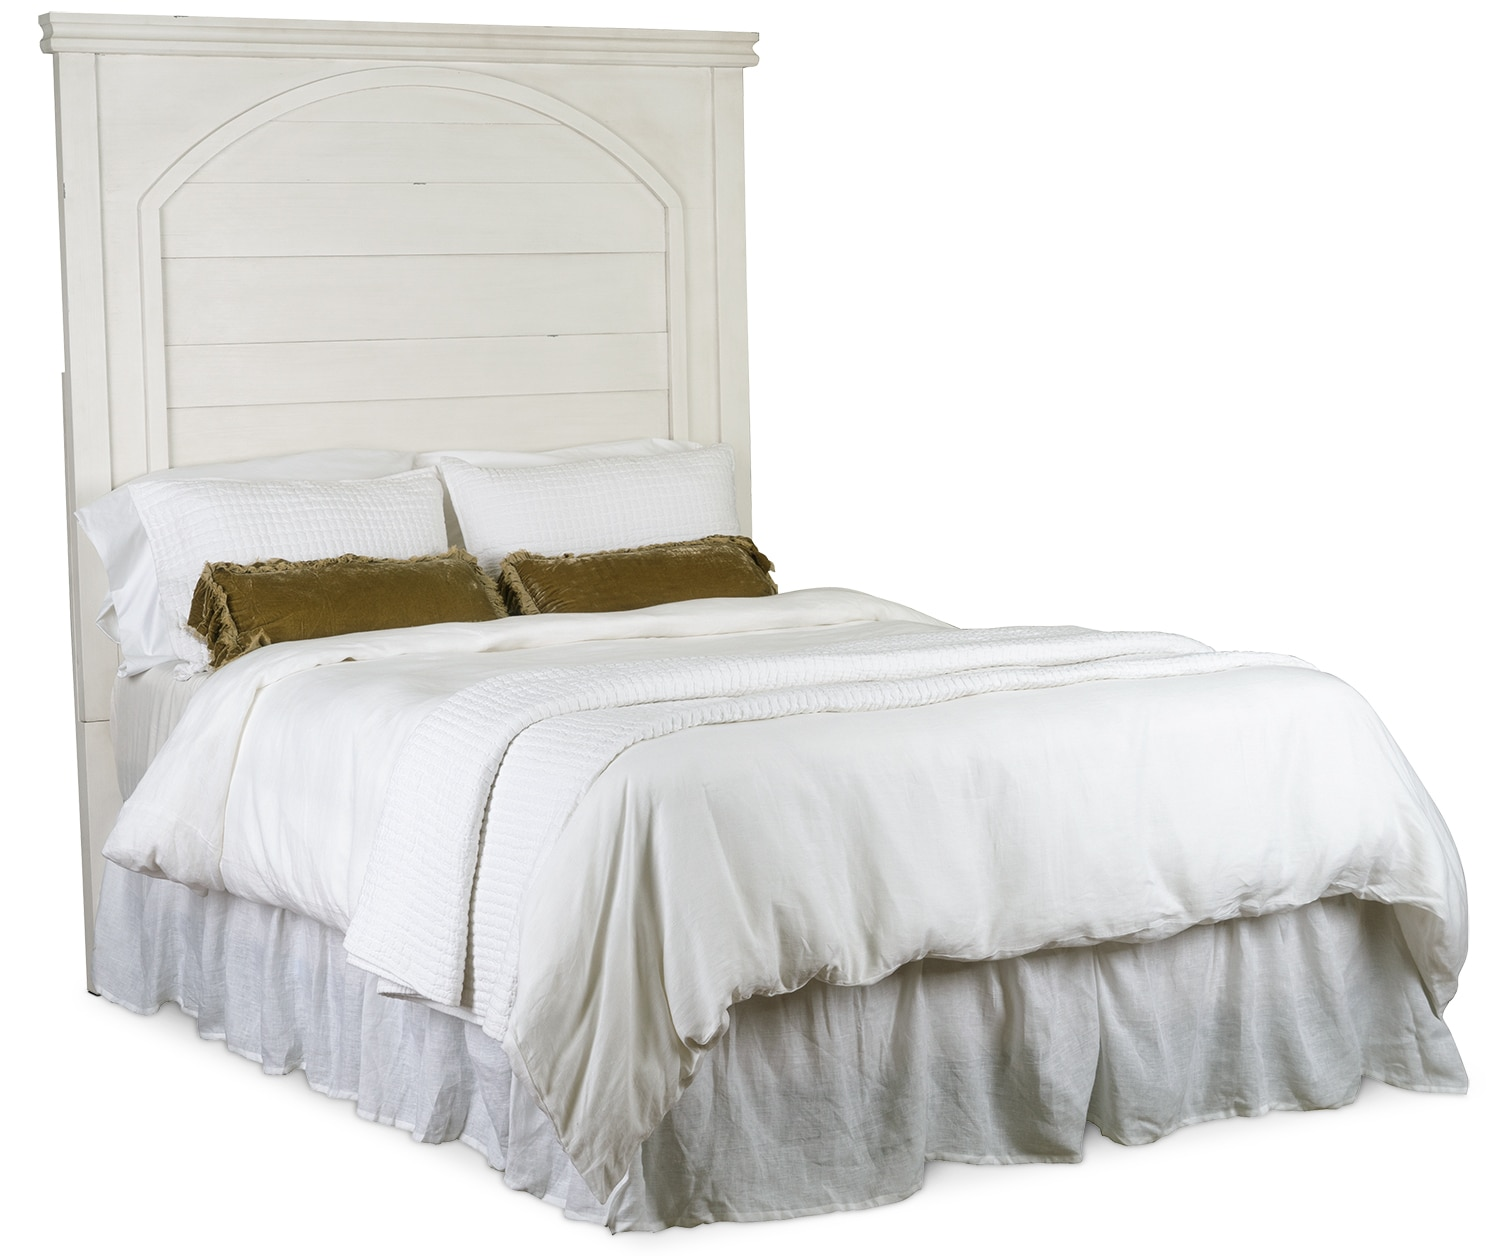 Bedroom Furniture - King Passage Headboard